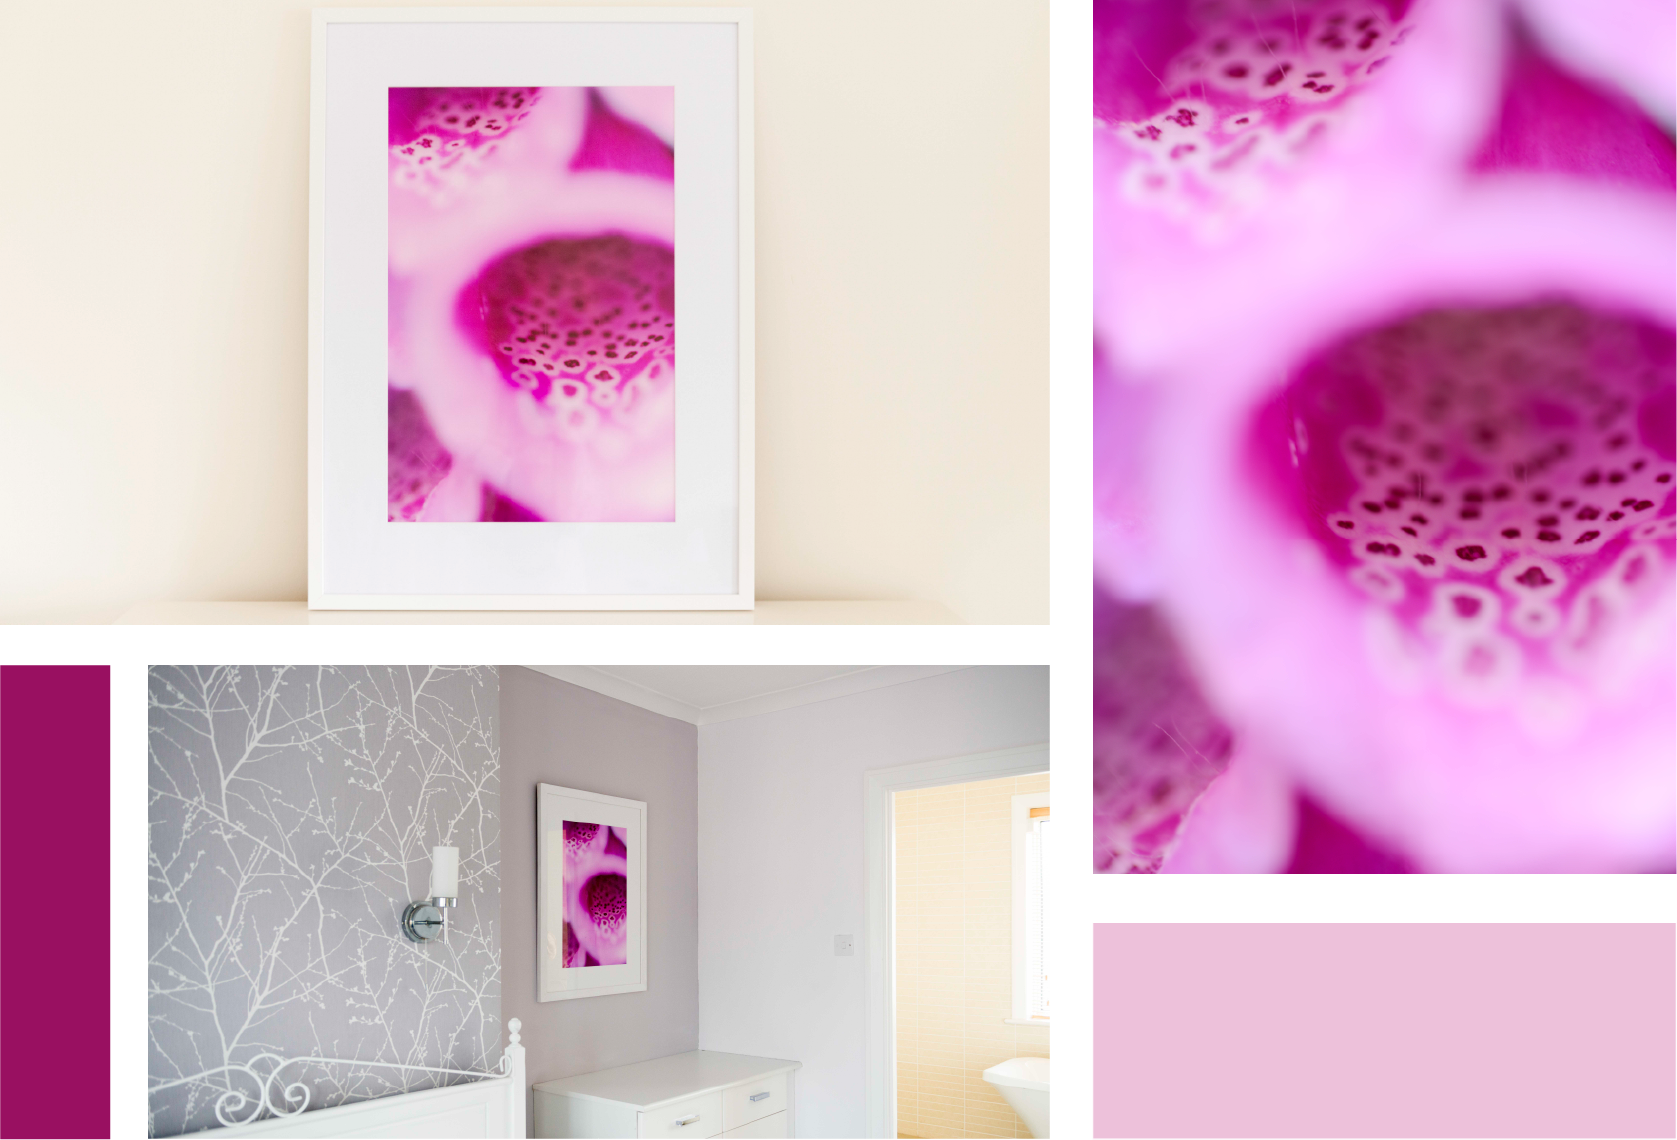 Soft geometric form, interspersed with floating rosettes and intense colour; this piece provides an eye-catching focal point for sophisticated modern interiors. - Original artwork by Donna Lloyd.Limited-edition. 150 in existence.This high resolution artwork comes with a signed Certificate of AuthenticitySize65cm x 85cm (framed)More sizes are available. Please contact me for further information.MaterialsPrinted On Fujiflex Super Gloss Archival Paper and supplied in a white, hand painted wooden frame with anti-reflective glass as standard. Frames are available in a range of colours. Please contact me separately for prices and timelines for other frame options (Extra charges may apply).